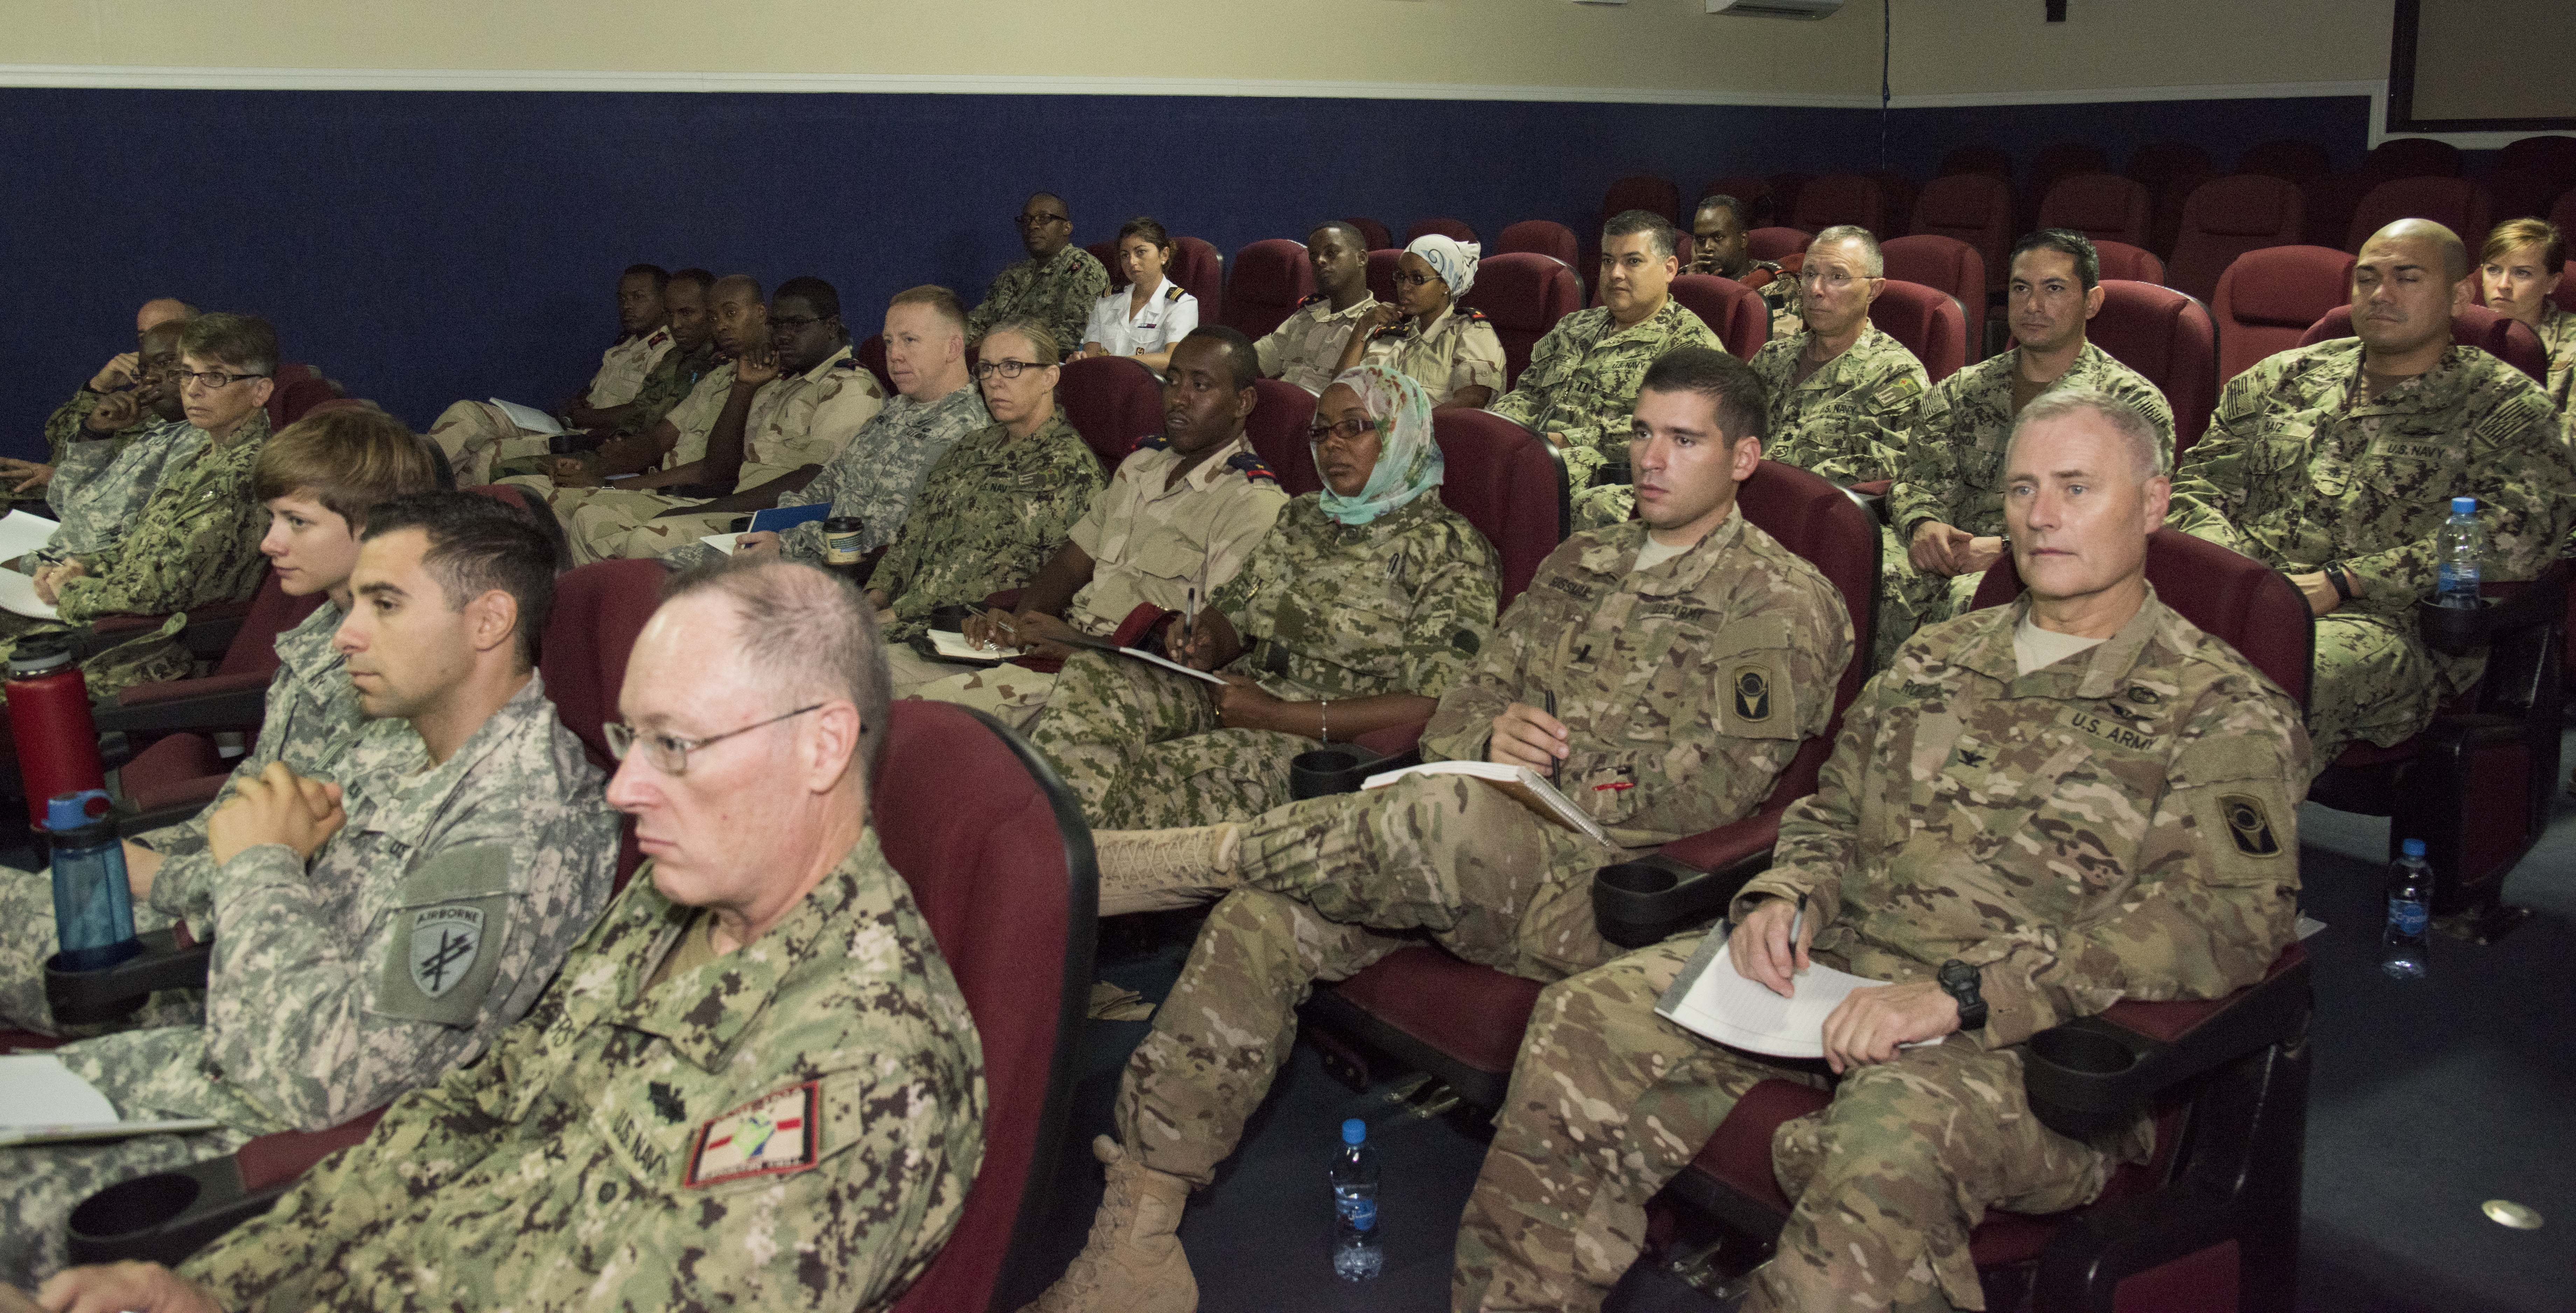 Medical professionals from U.S., French and Djiboutian armed forces gathered for a Military Tropical Medicine Course at Camp Lemonnier, Djibouti, Oct. 20 to 22, 2015. The course was an exchange of knowledge and experience about diseases common to the Horn of Africa and around the world. (U.S. Air Force photo by Staff Sgt. Victoria Sneed)